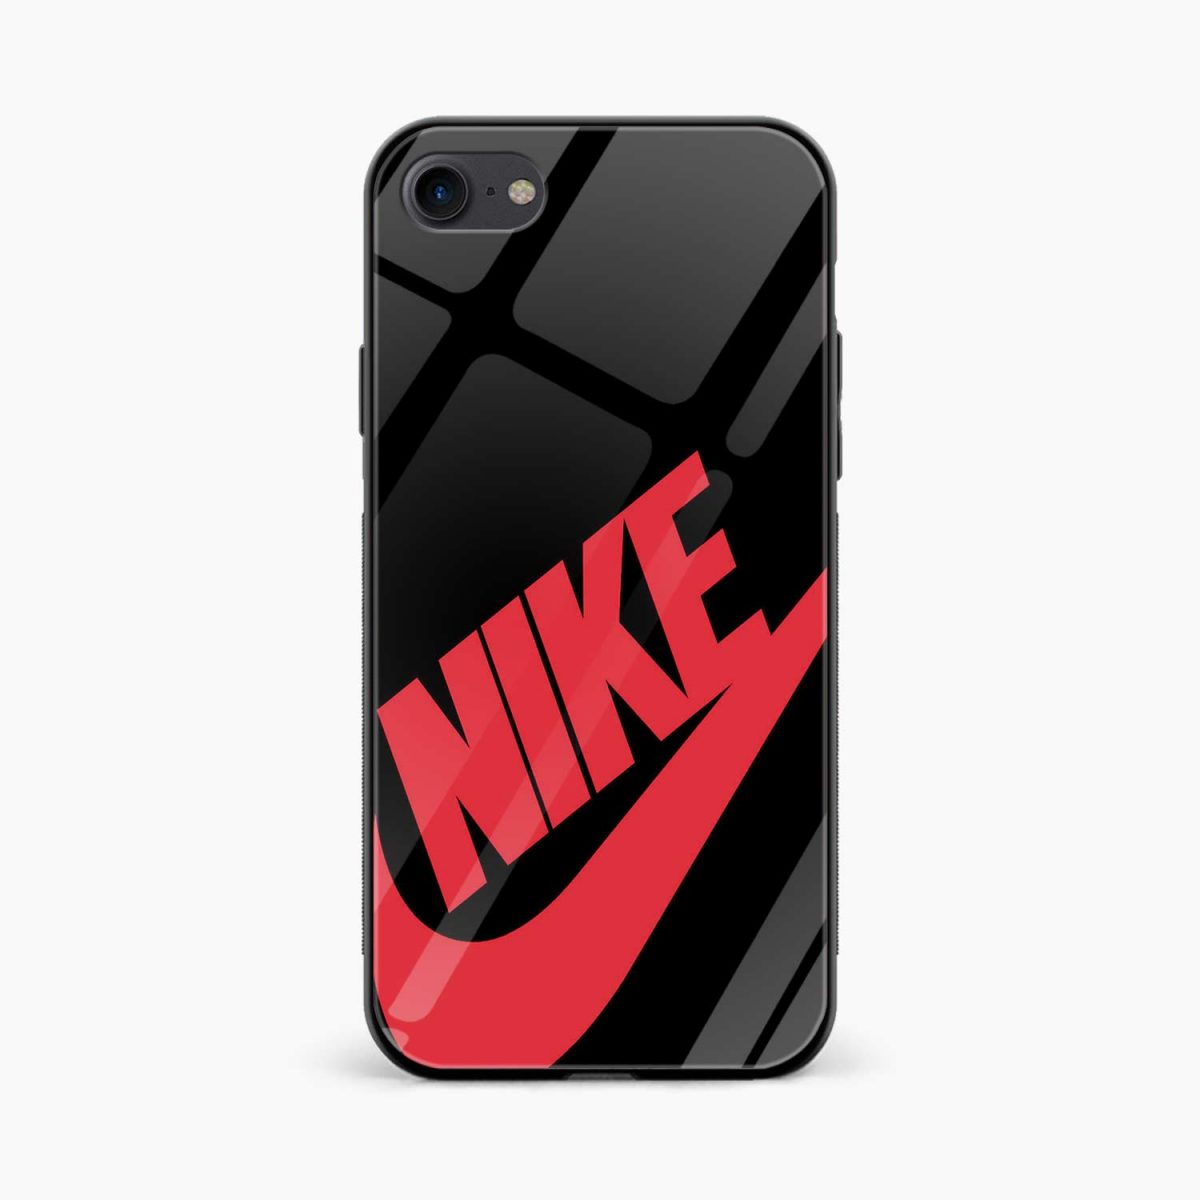 nike black red diagonal view apple iphone 6 7 8 se back cover 2